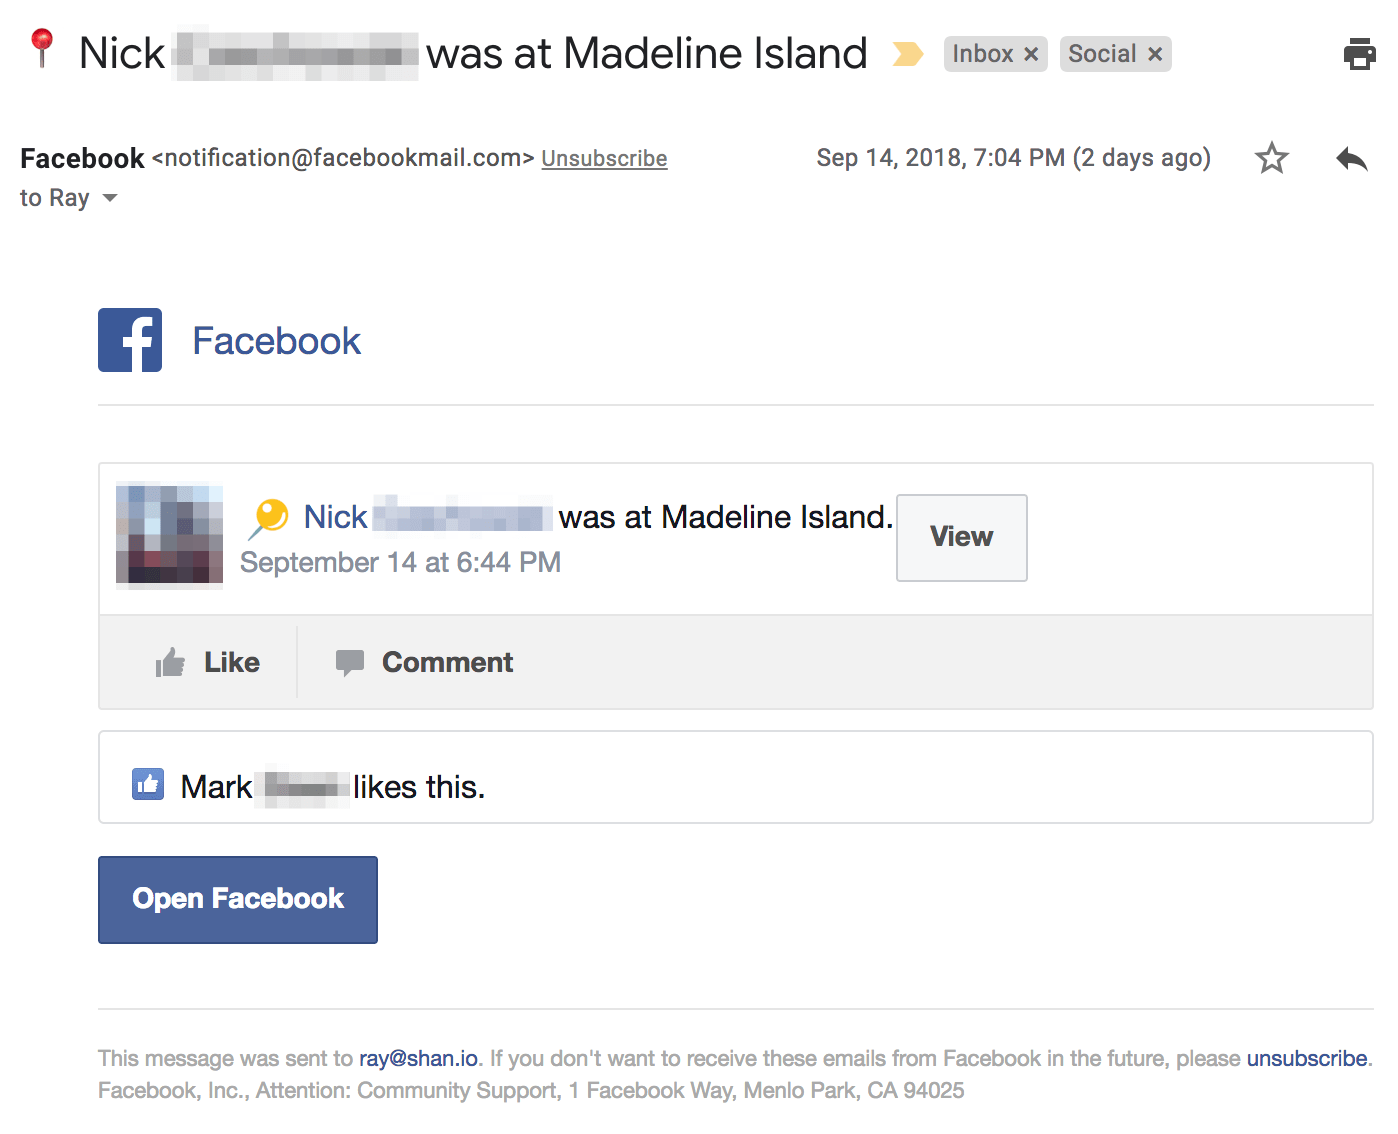 An undead Facebook email notification